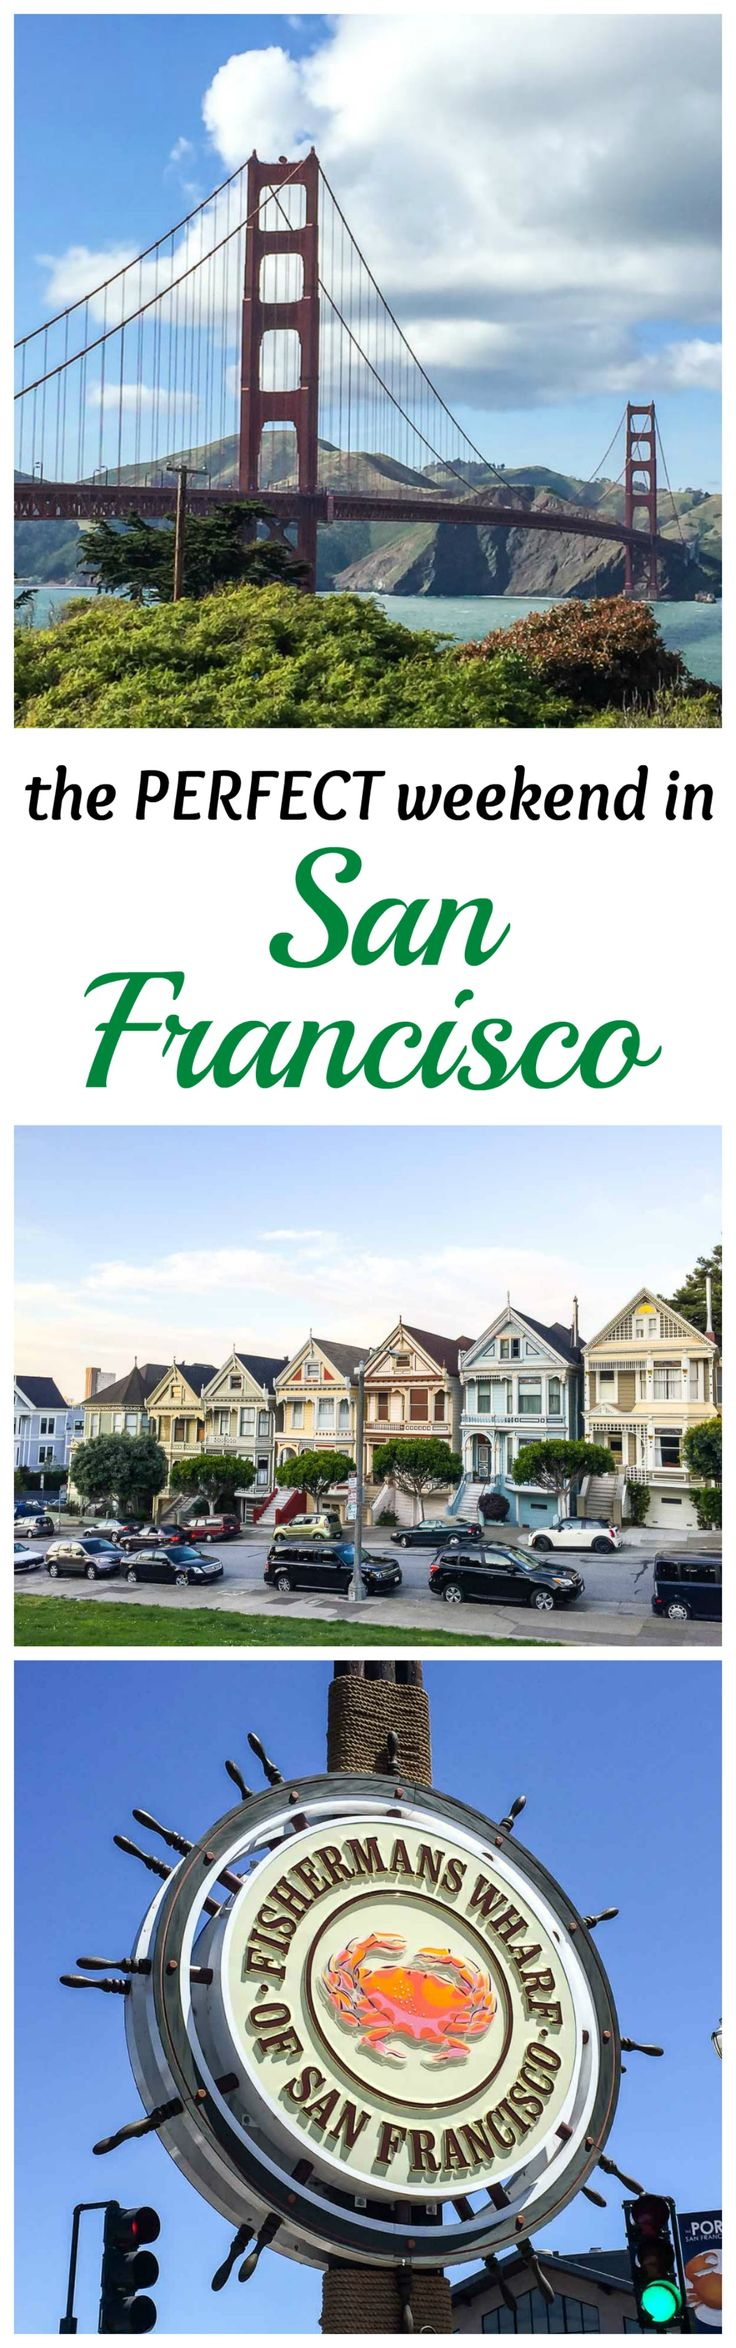 Everything you need to know to plan the PERFECT weekend in San Francisco, including top San Francisco attractions, restaurants, and hotels. Travel guide from www.wellplated.com @wellplated